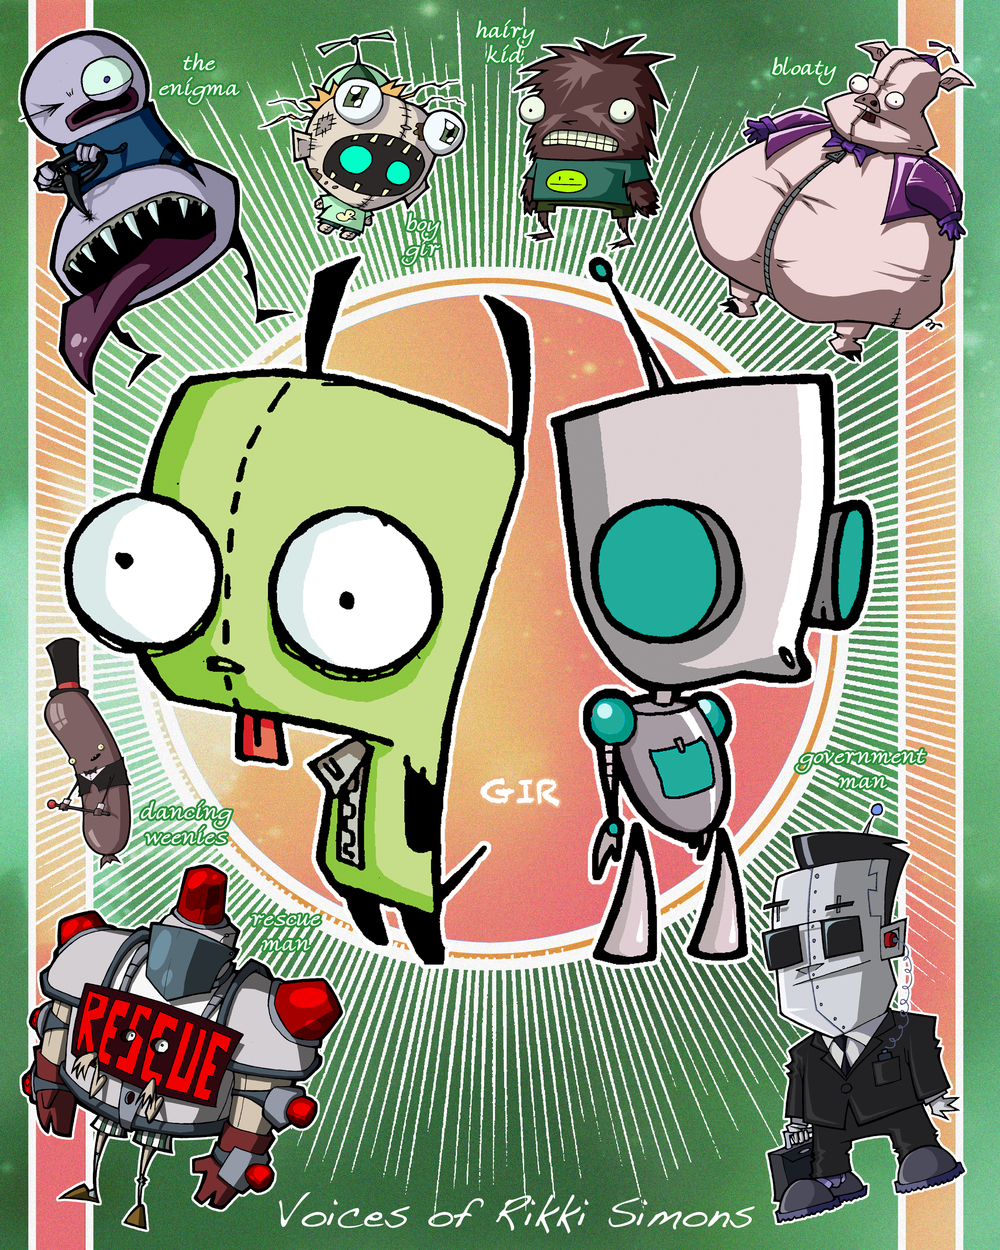 Rikki is the Voice of GIR and Bloaty and a host of Invader ZIM characters.